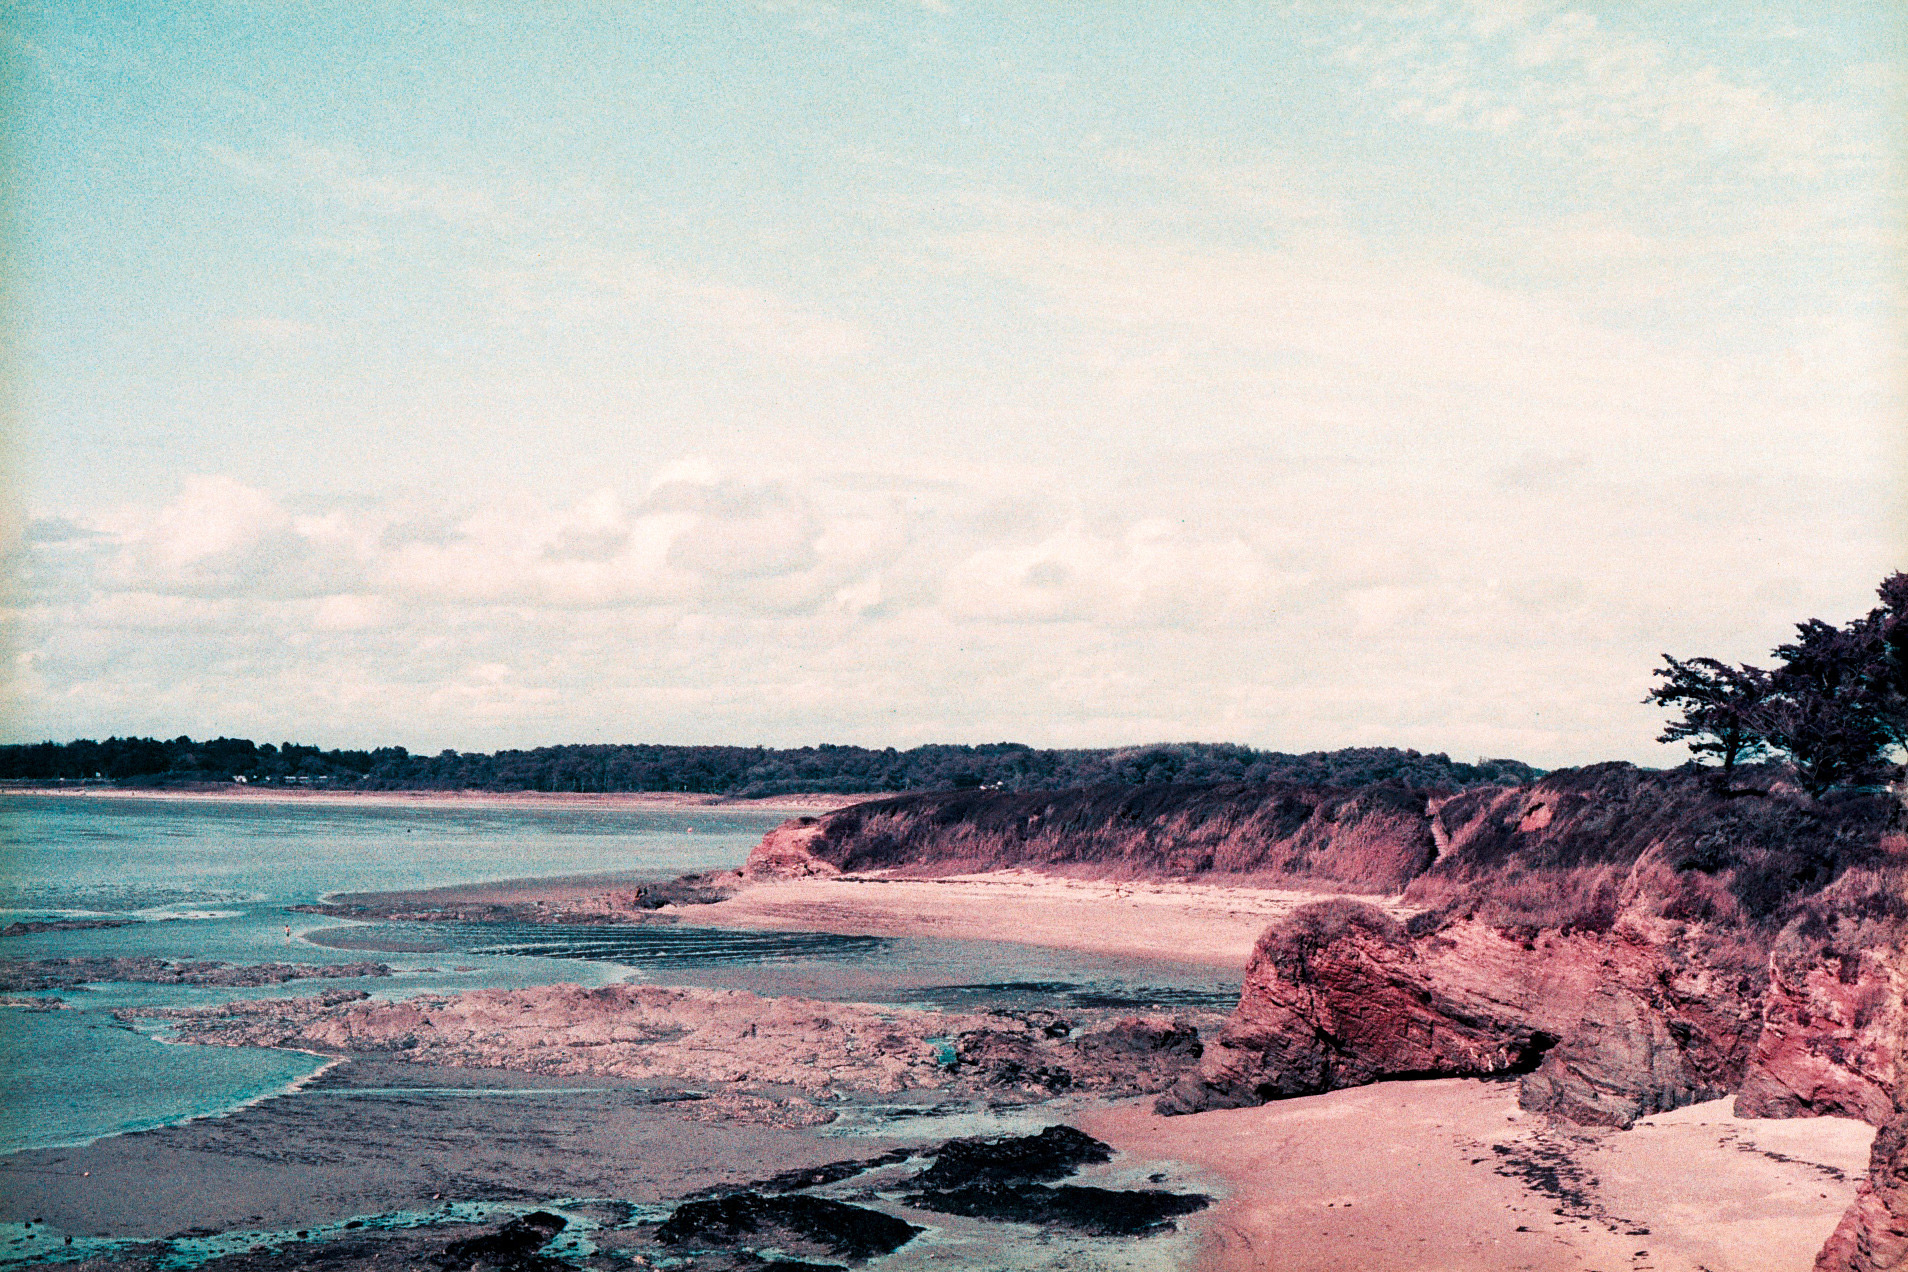 2014 - Bretagne -  Camera  Olympus OM10  Lens  Zuiko 50mm f/1.8  Film  Lomochrome Purple XR 100-400